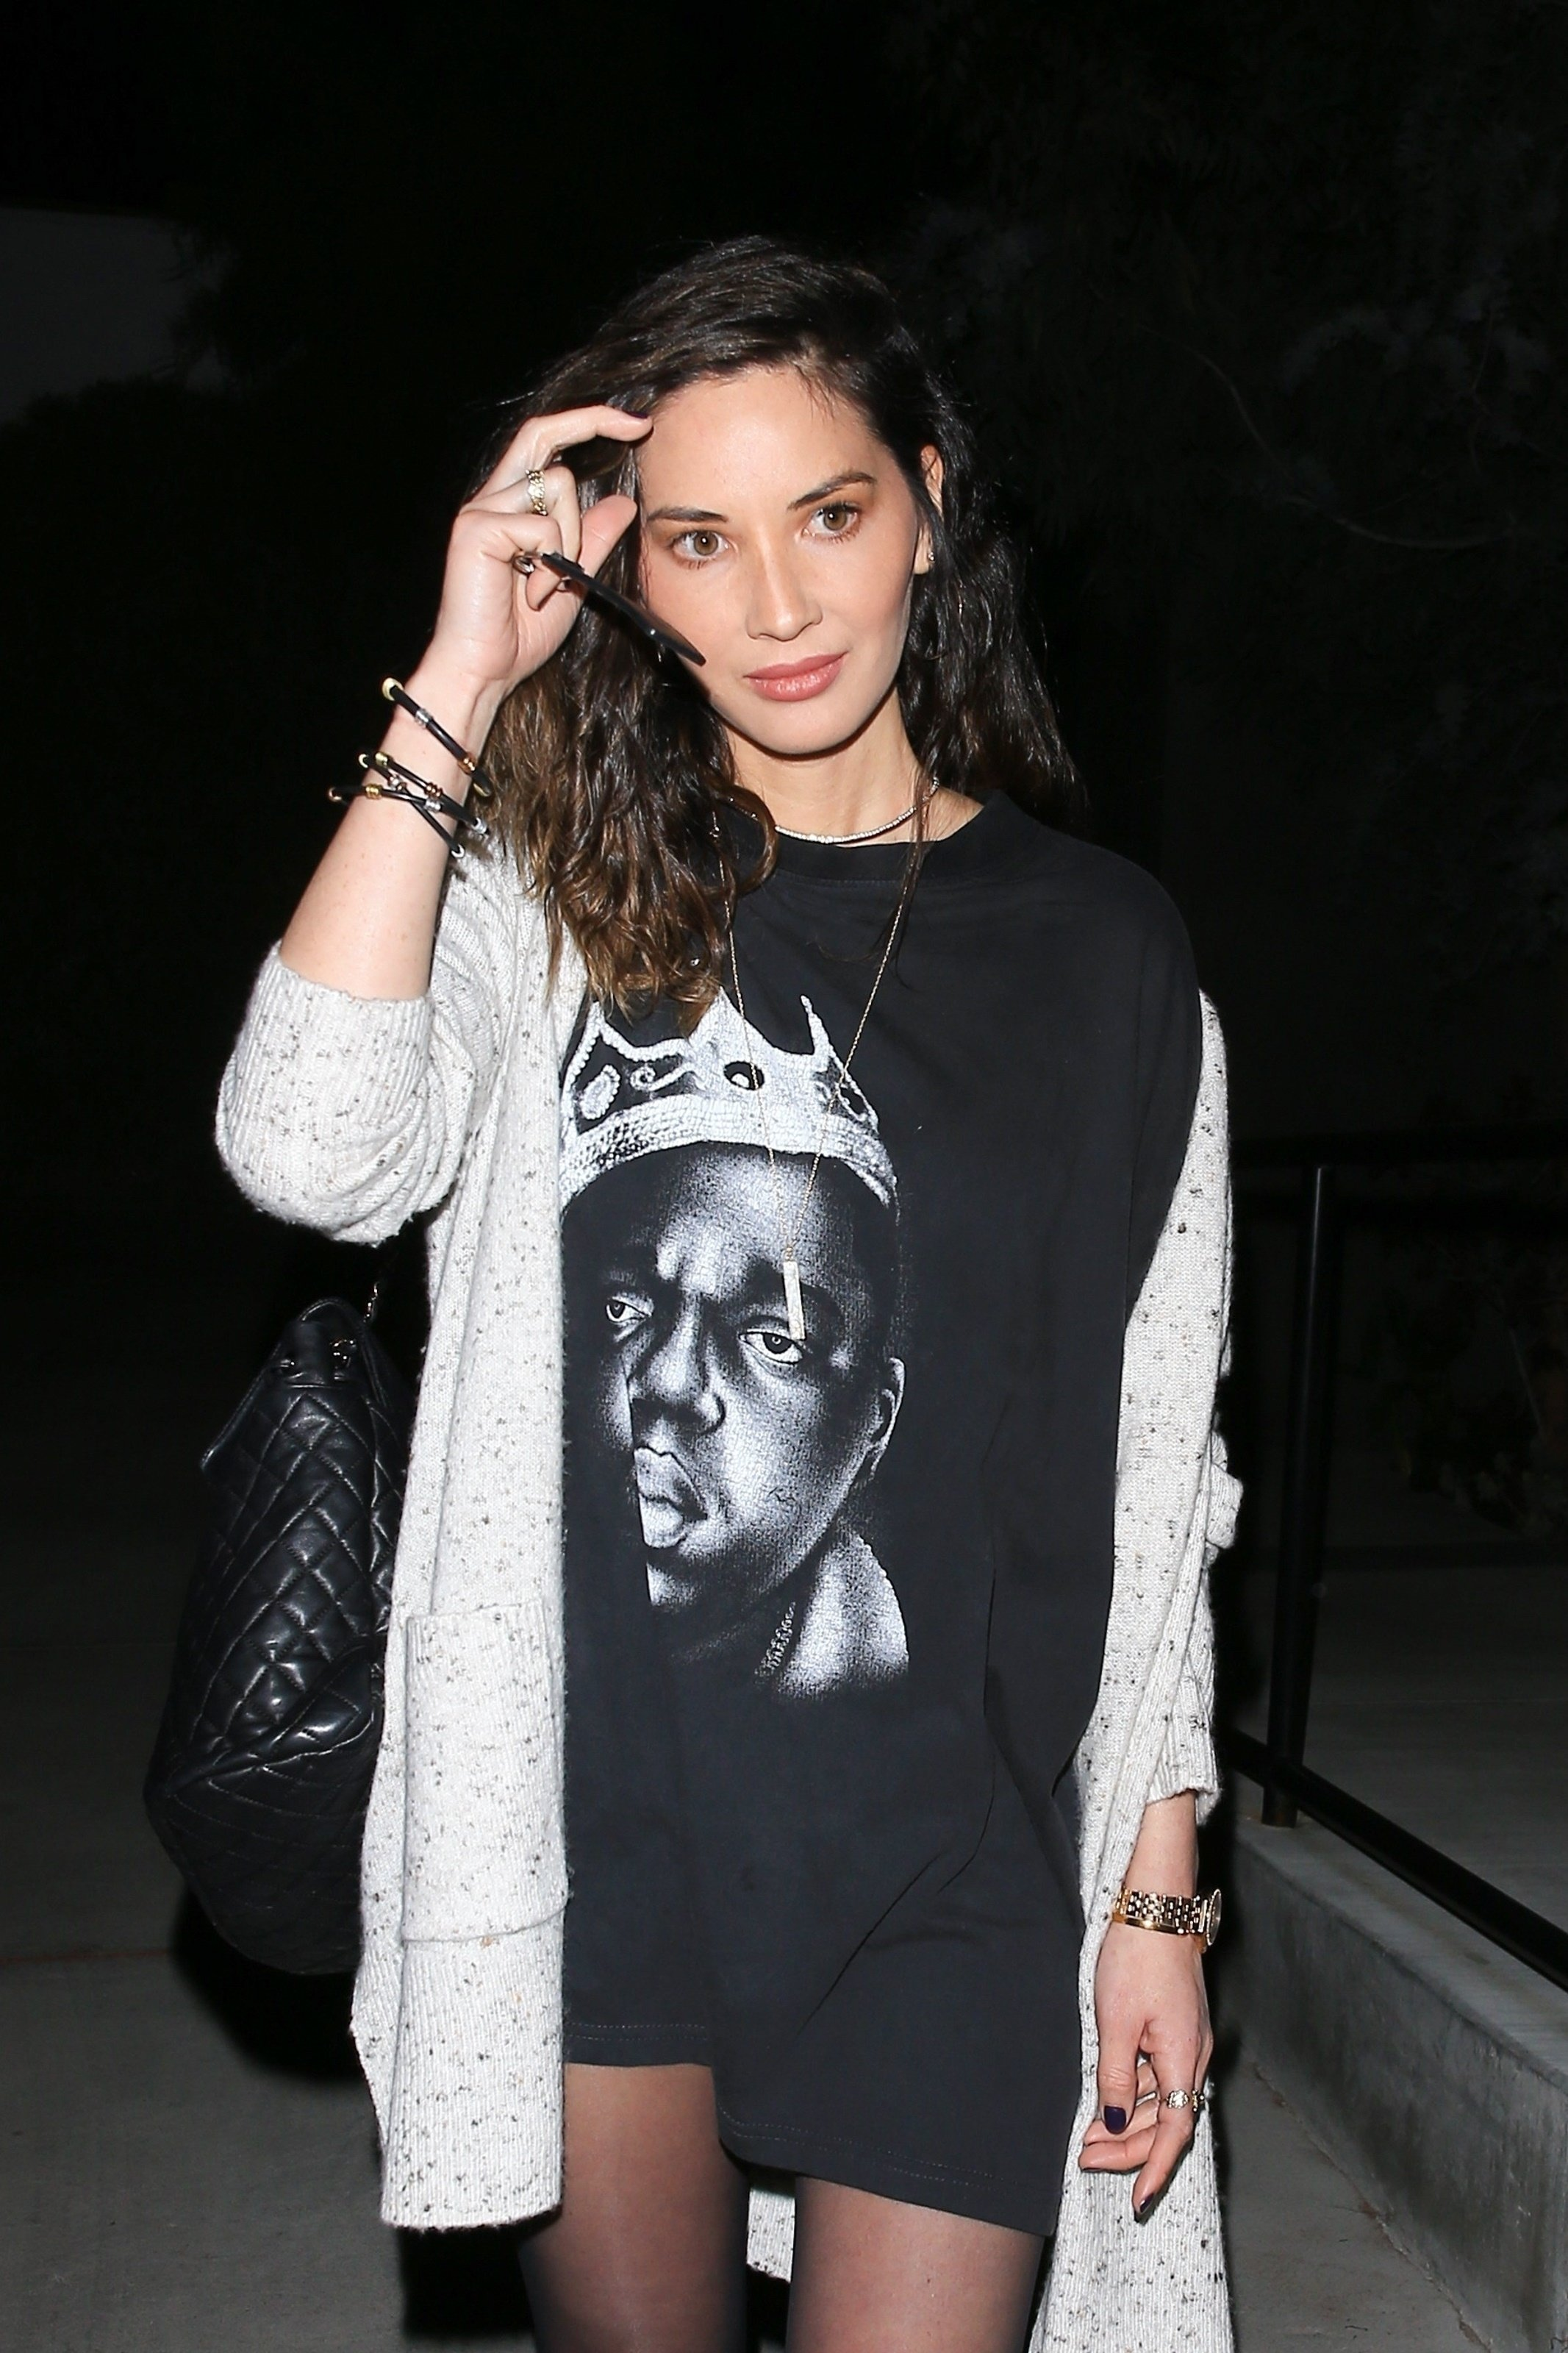 West Hollywood, CA  - Actress Olivia Munn was spotted leaving a hair salon looking stylish and sexy in a t-shirt dress and black leggings during an evening out in West Hollywood.  Pictured: Olivia Munn  BACKGRID USA 7 MARCH 2018, Image: 365486432, License: Rights-managed, Restrictions: , Model Release: no, Credit line: Profimedia, AKM-GSI